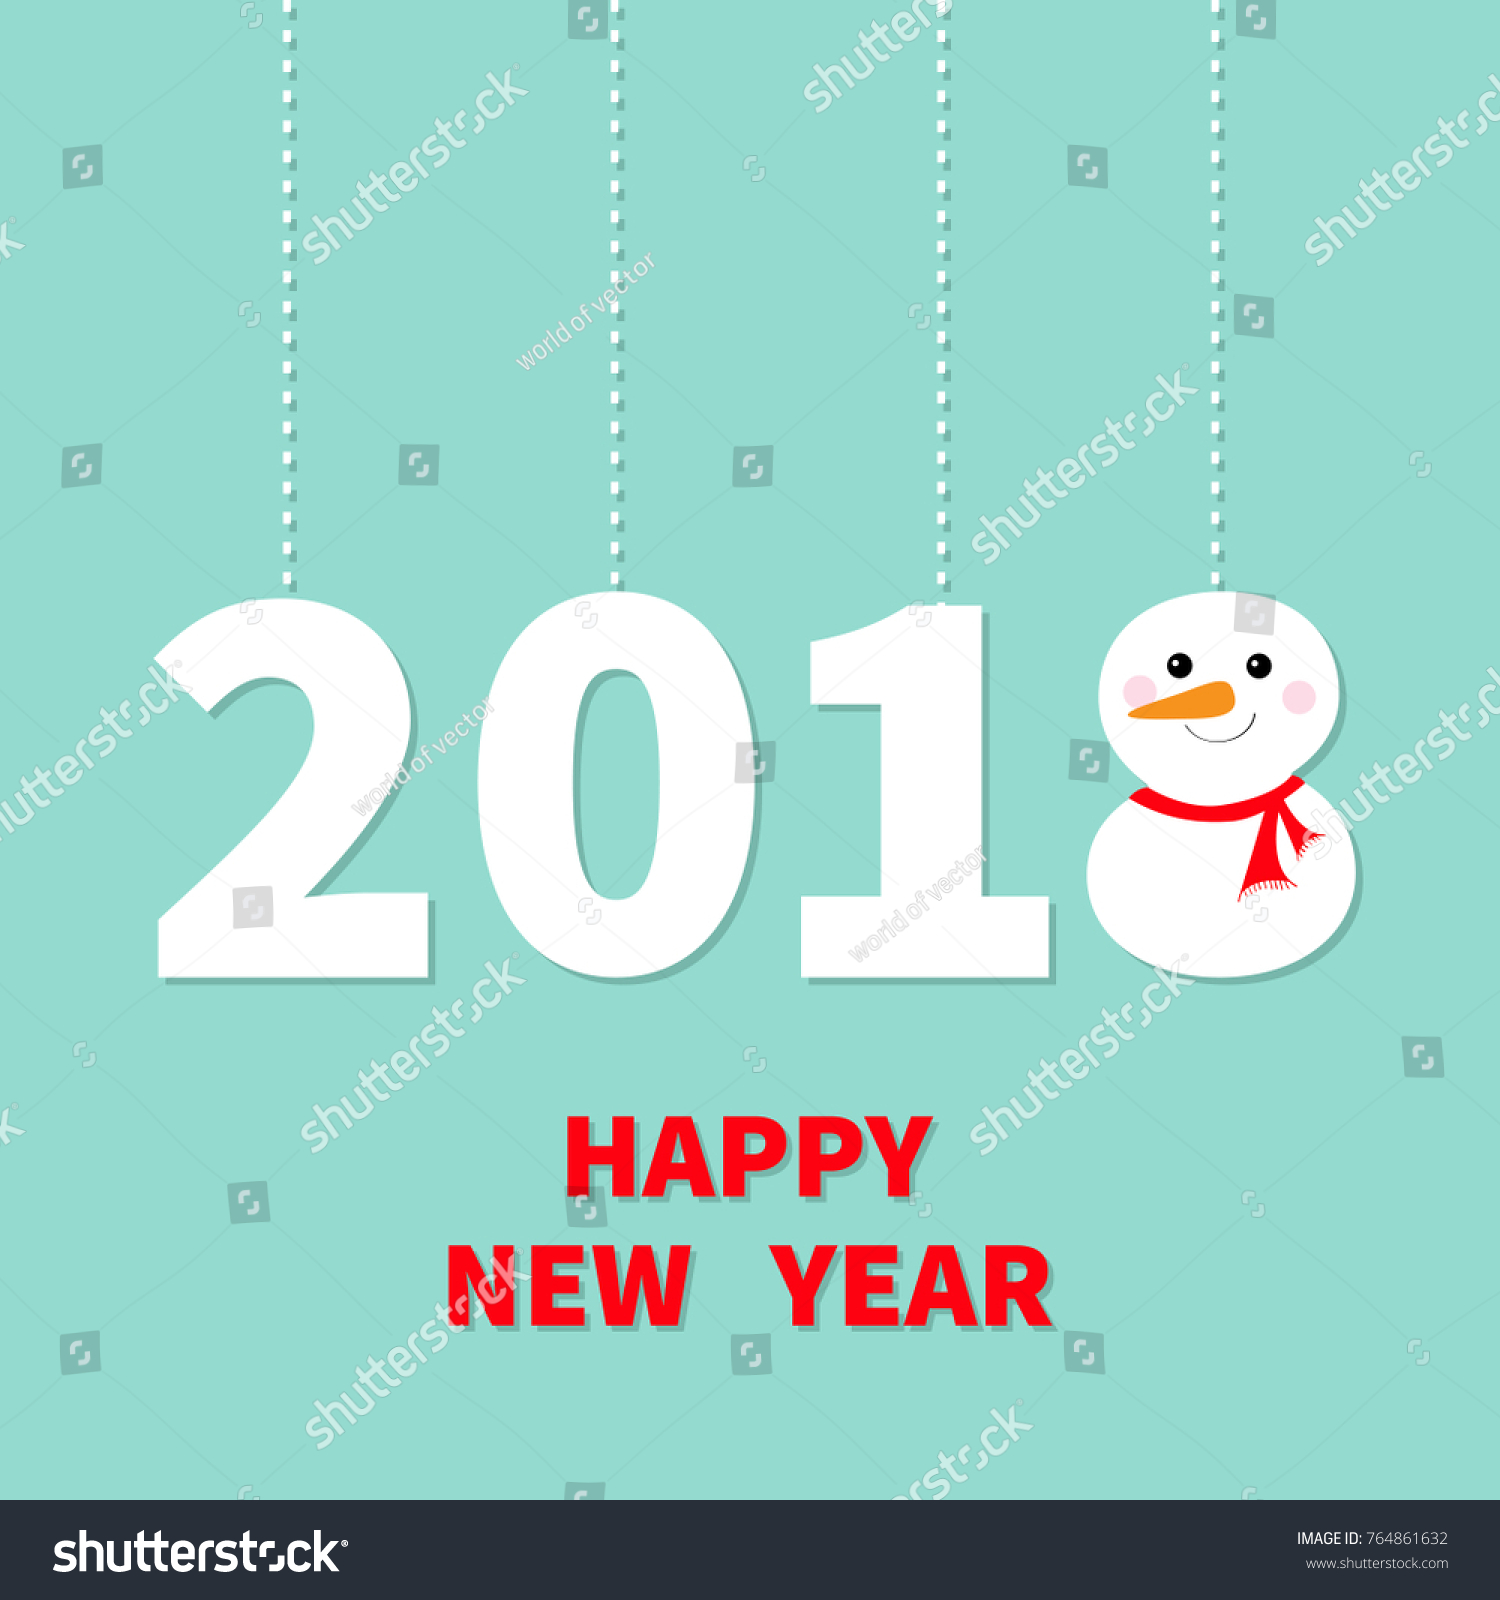 2018 happy new year cute snowman hanging dash line red scarf carrot nose